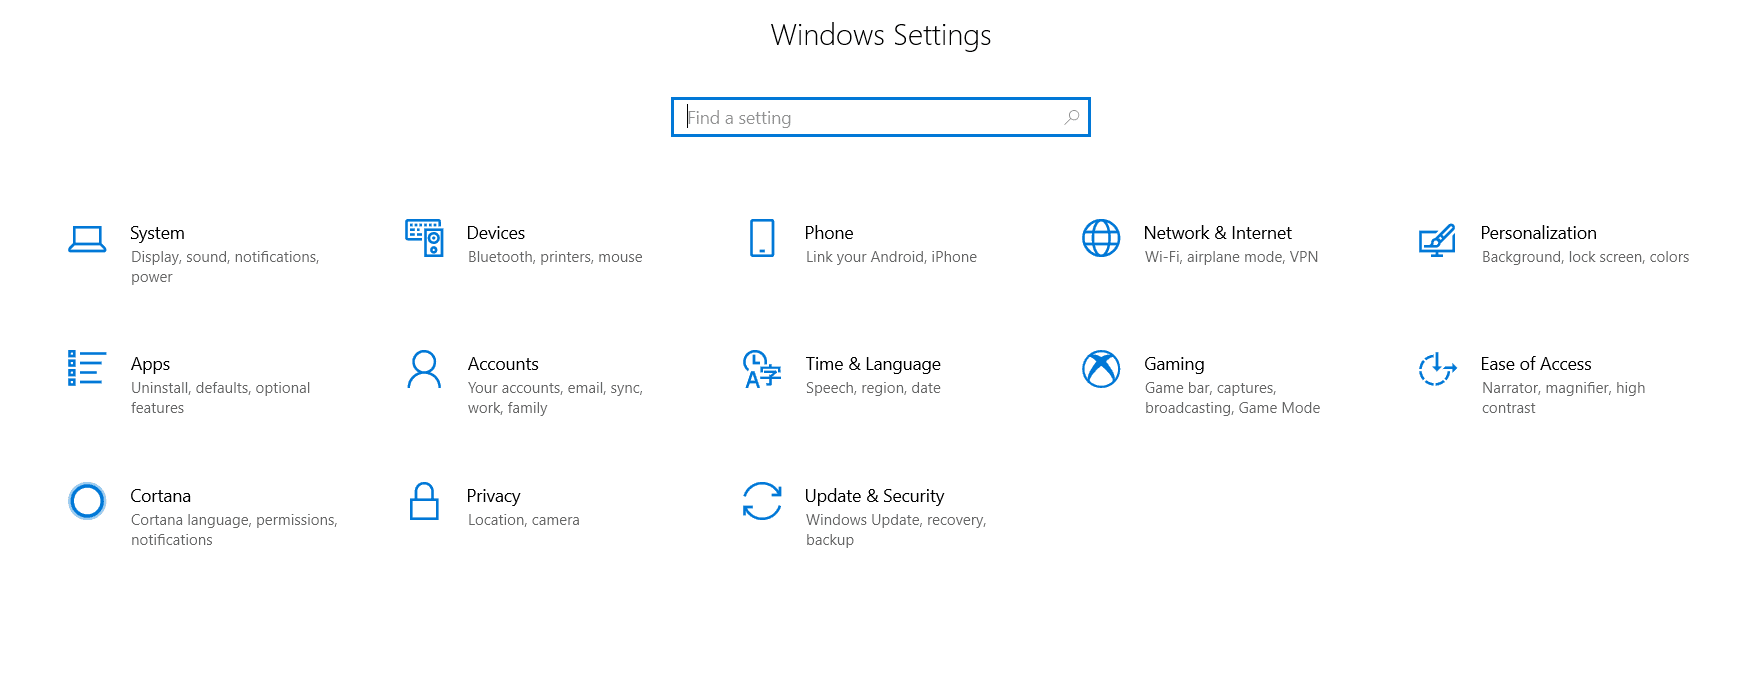 remove betterdiscord using windows settings